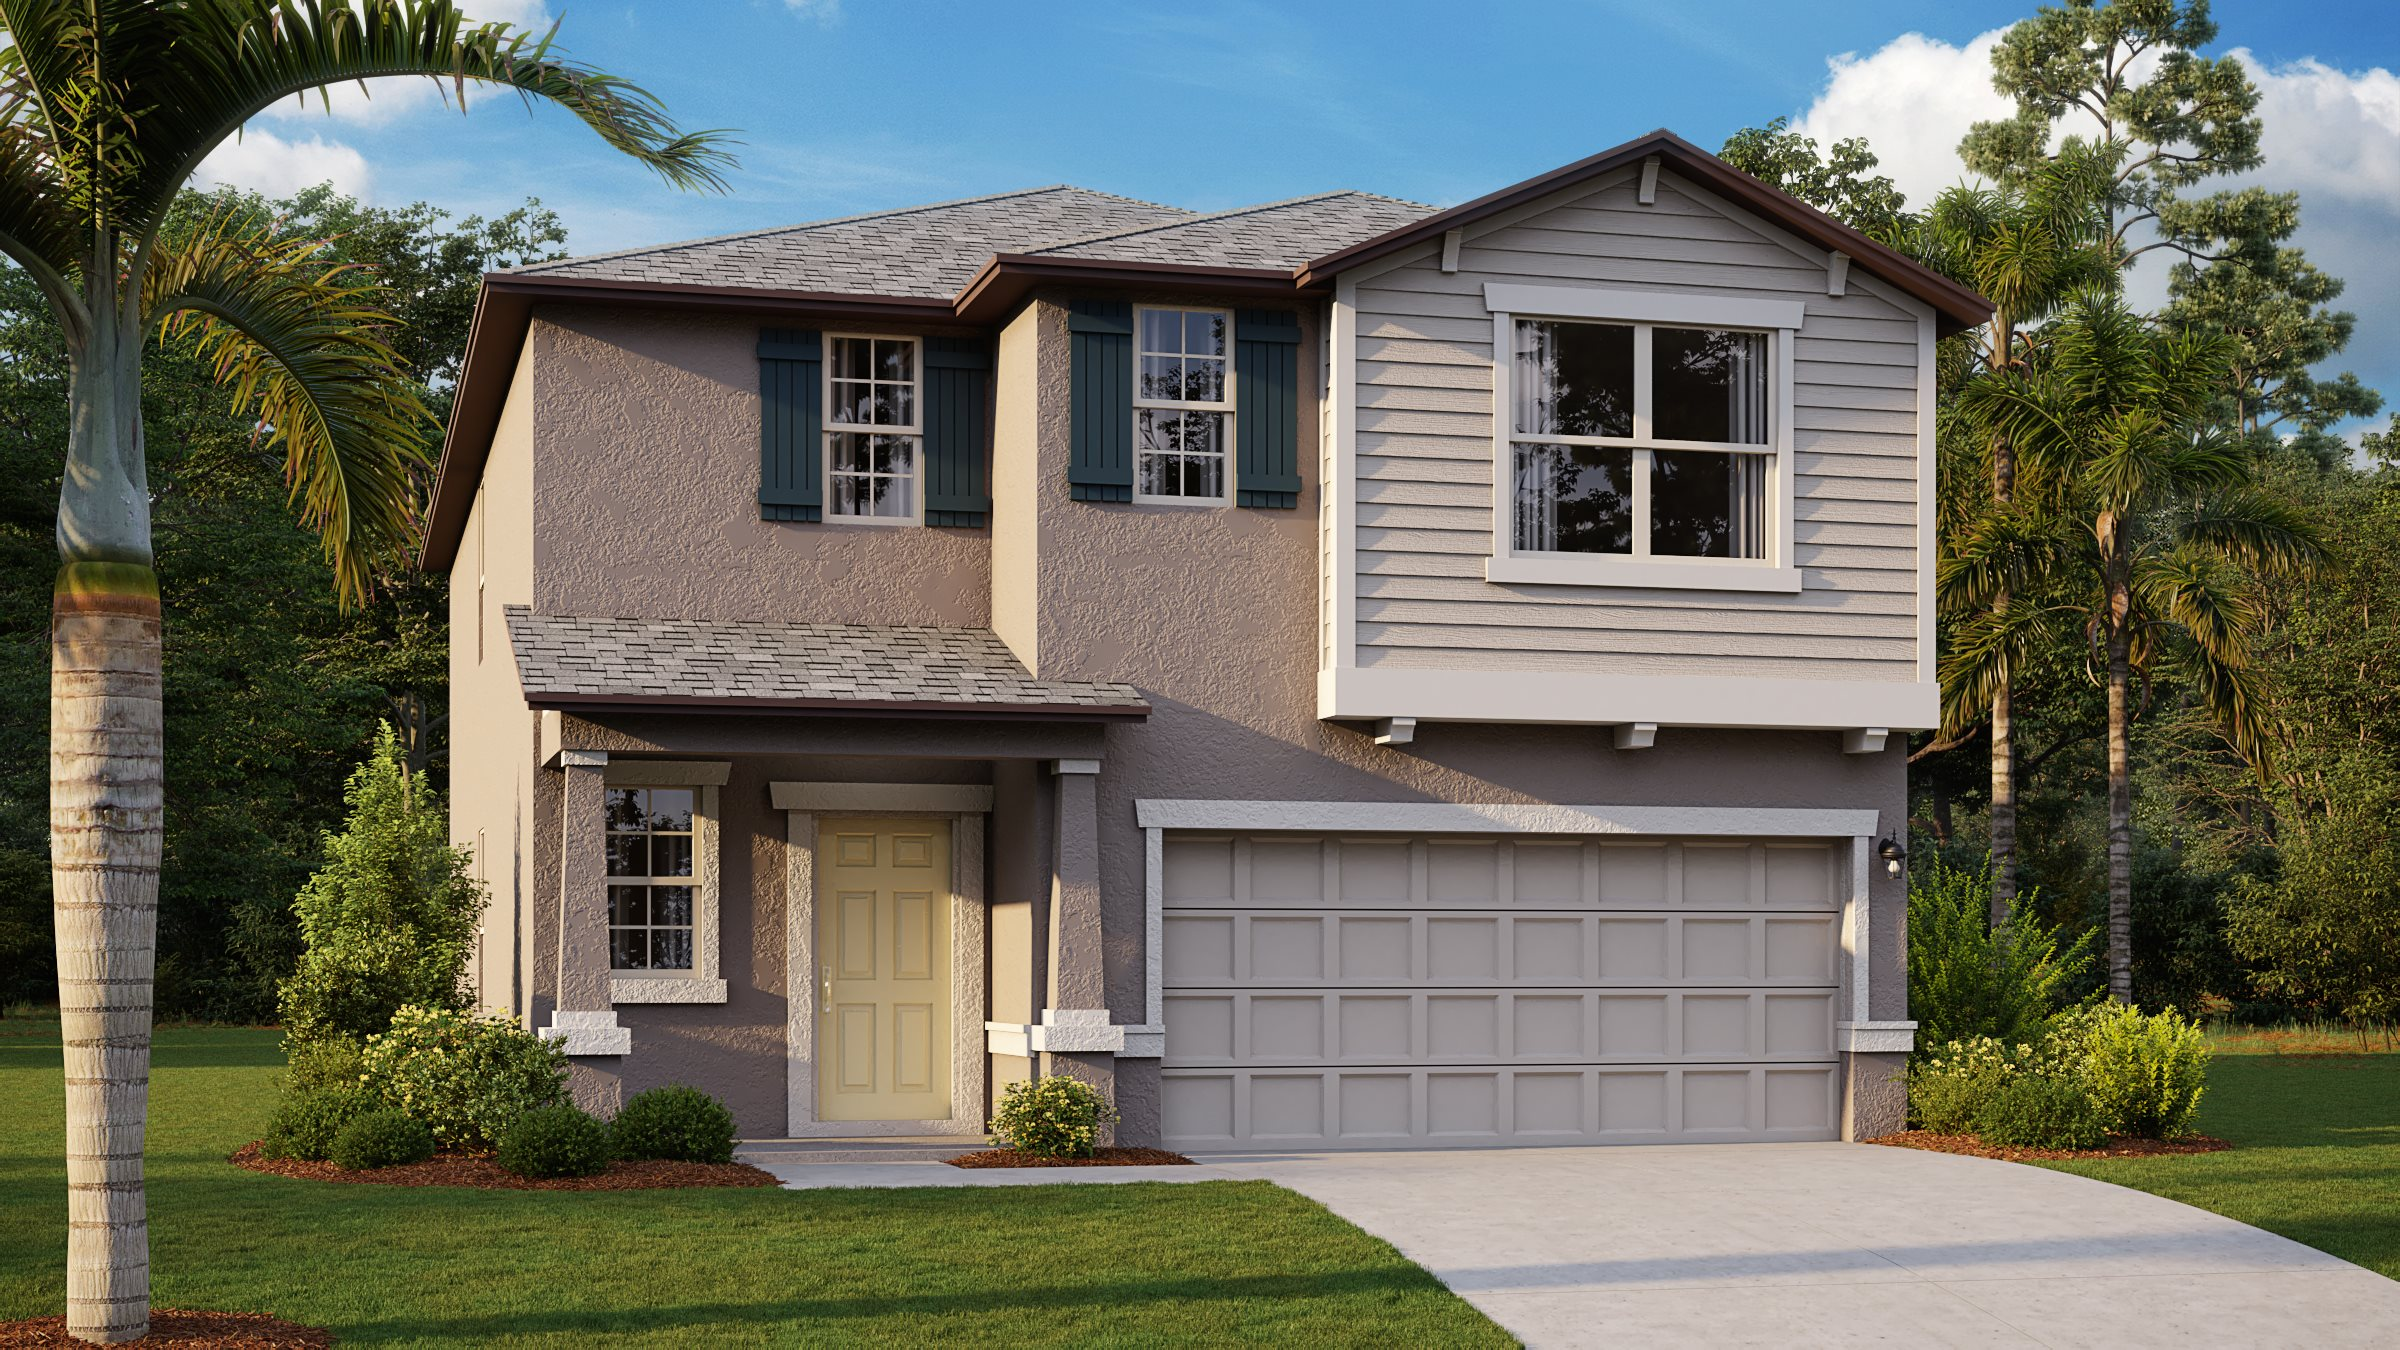 The Seattle Model Tour Hawks Glen Manors Lennar Homes Ruskin Florida